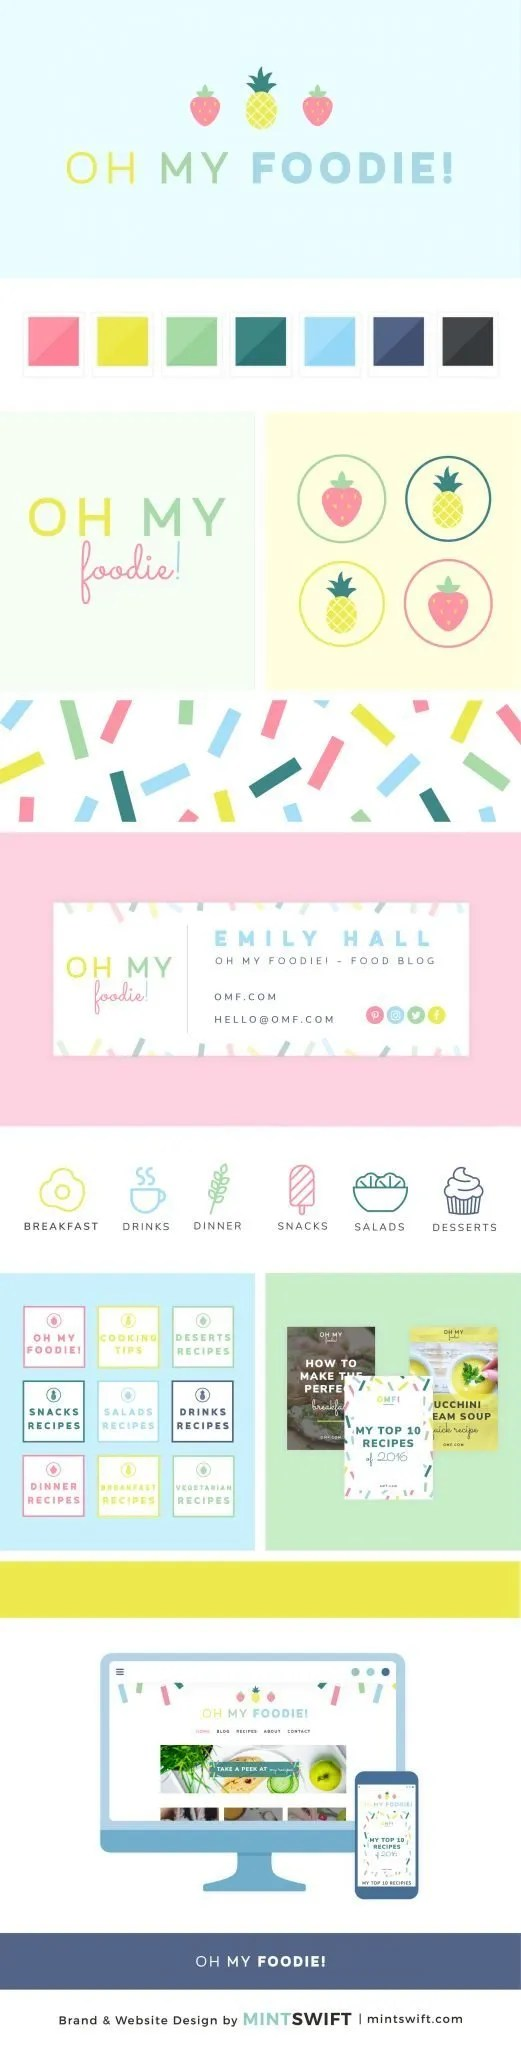 Oh My Foodie - Brand & Website Design Package - MintSwift